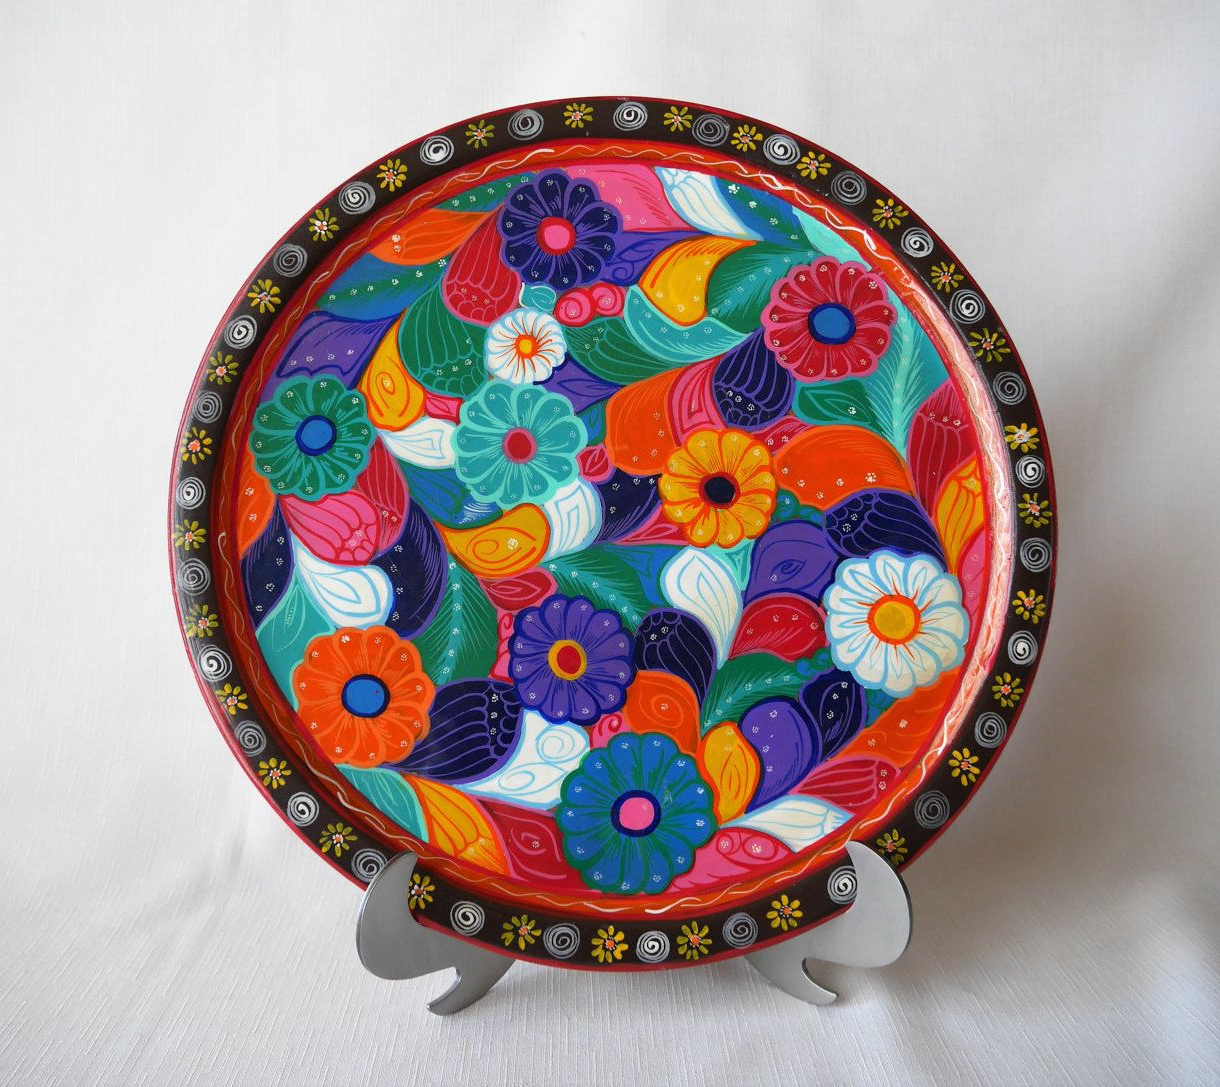 Multi Plates Wall Decor Within Widely Used Festive Wooden Mexican Floral Batea Platter, Plate, Tray, Multi (Gallery 16 of 20)